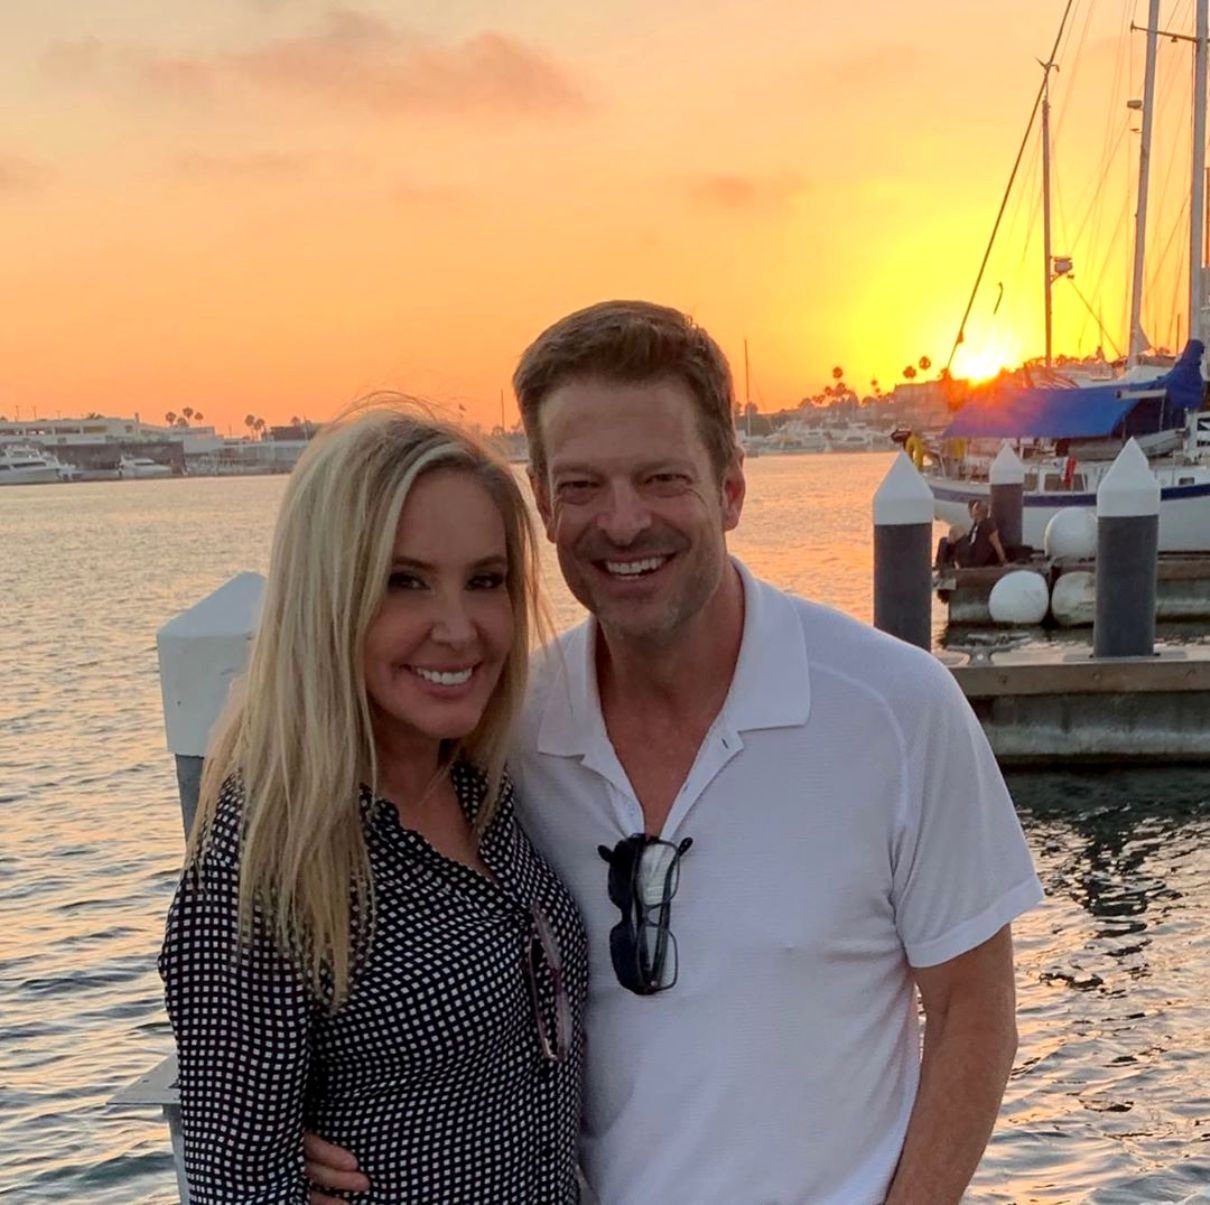 REPORT: RHOC's Shannon Beador is Dating Businessman John Janssen